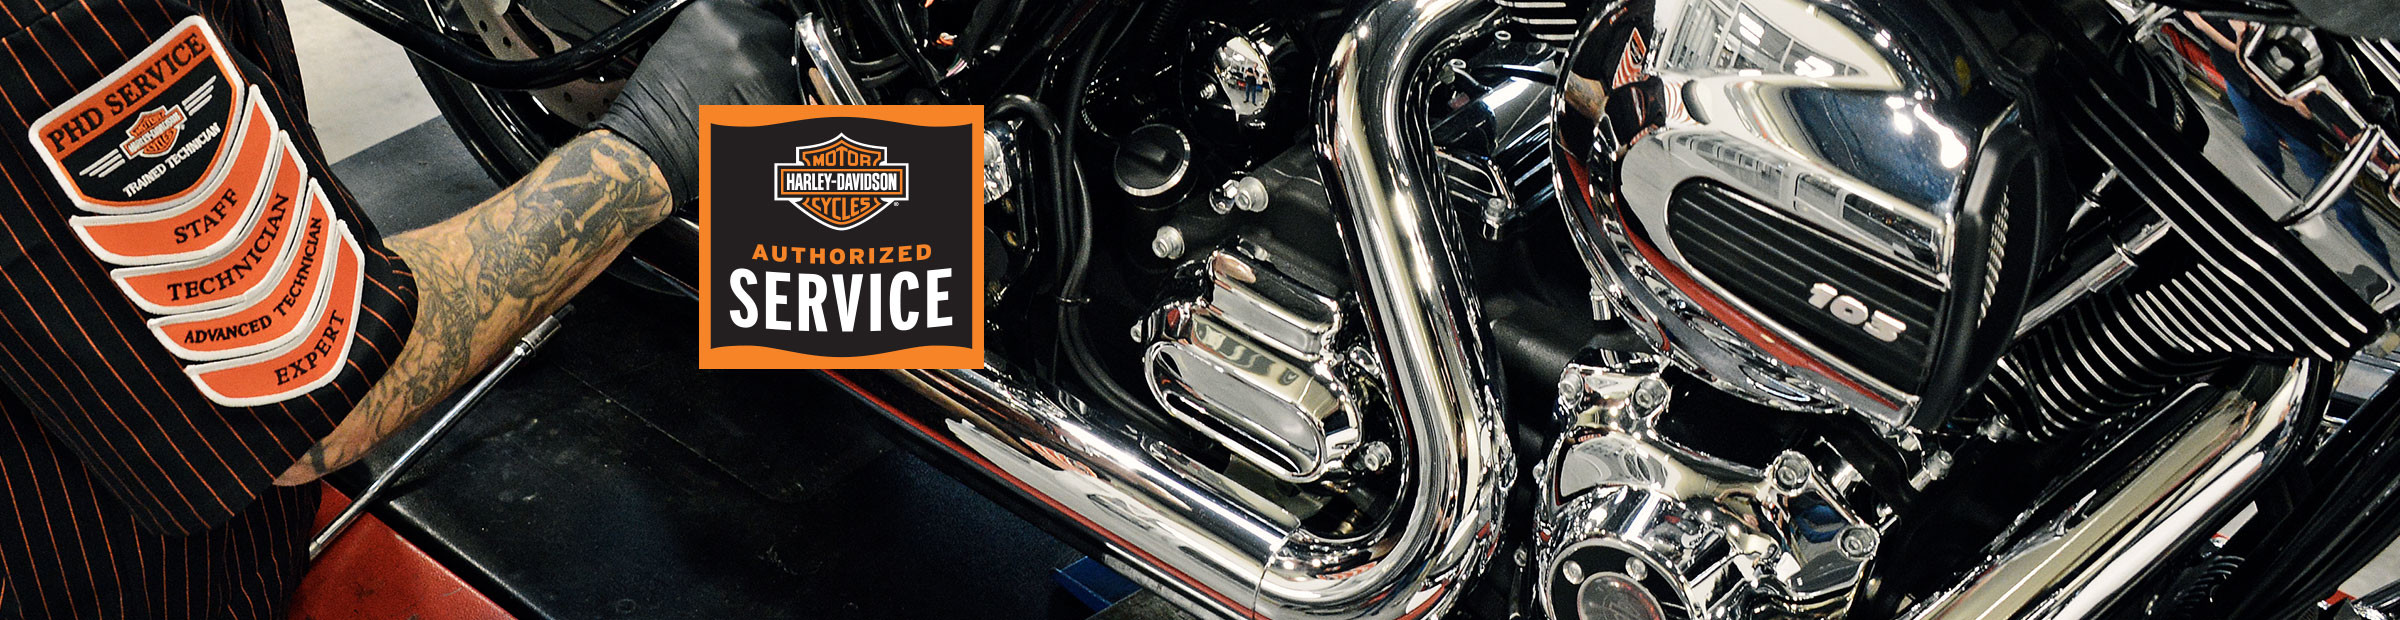 Service Your Harley at Lawless Harley-Davidson